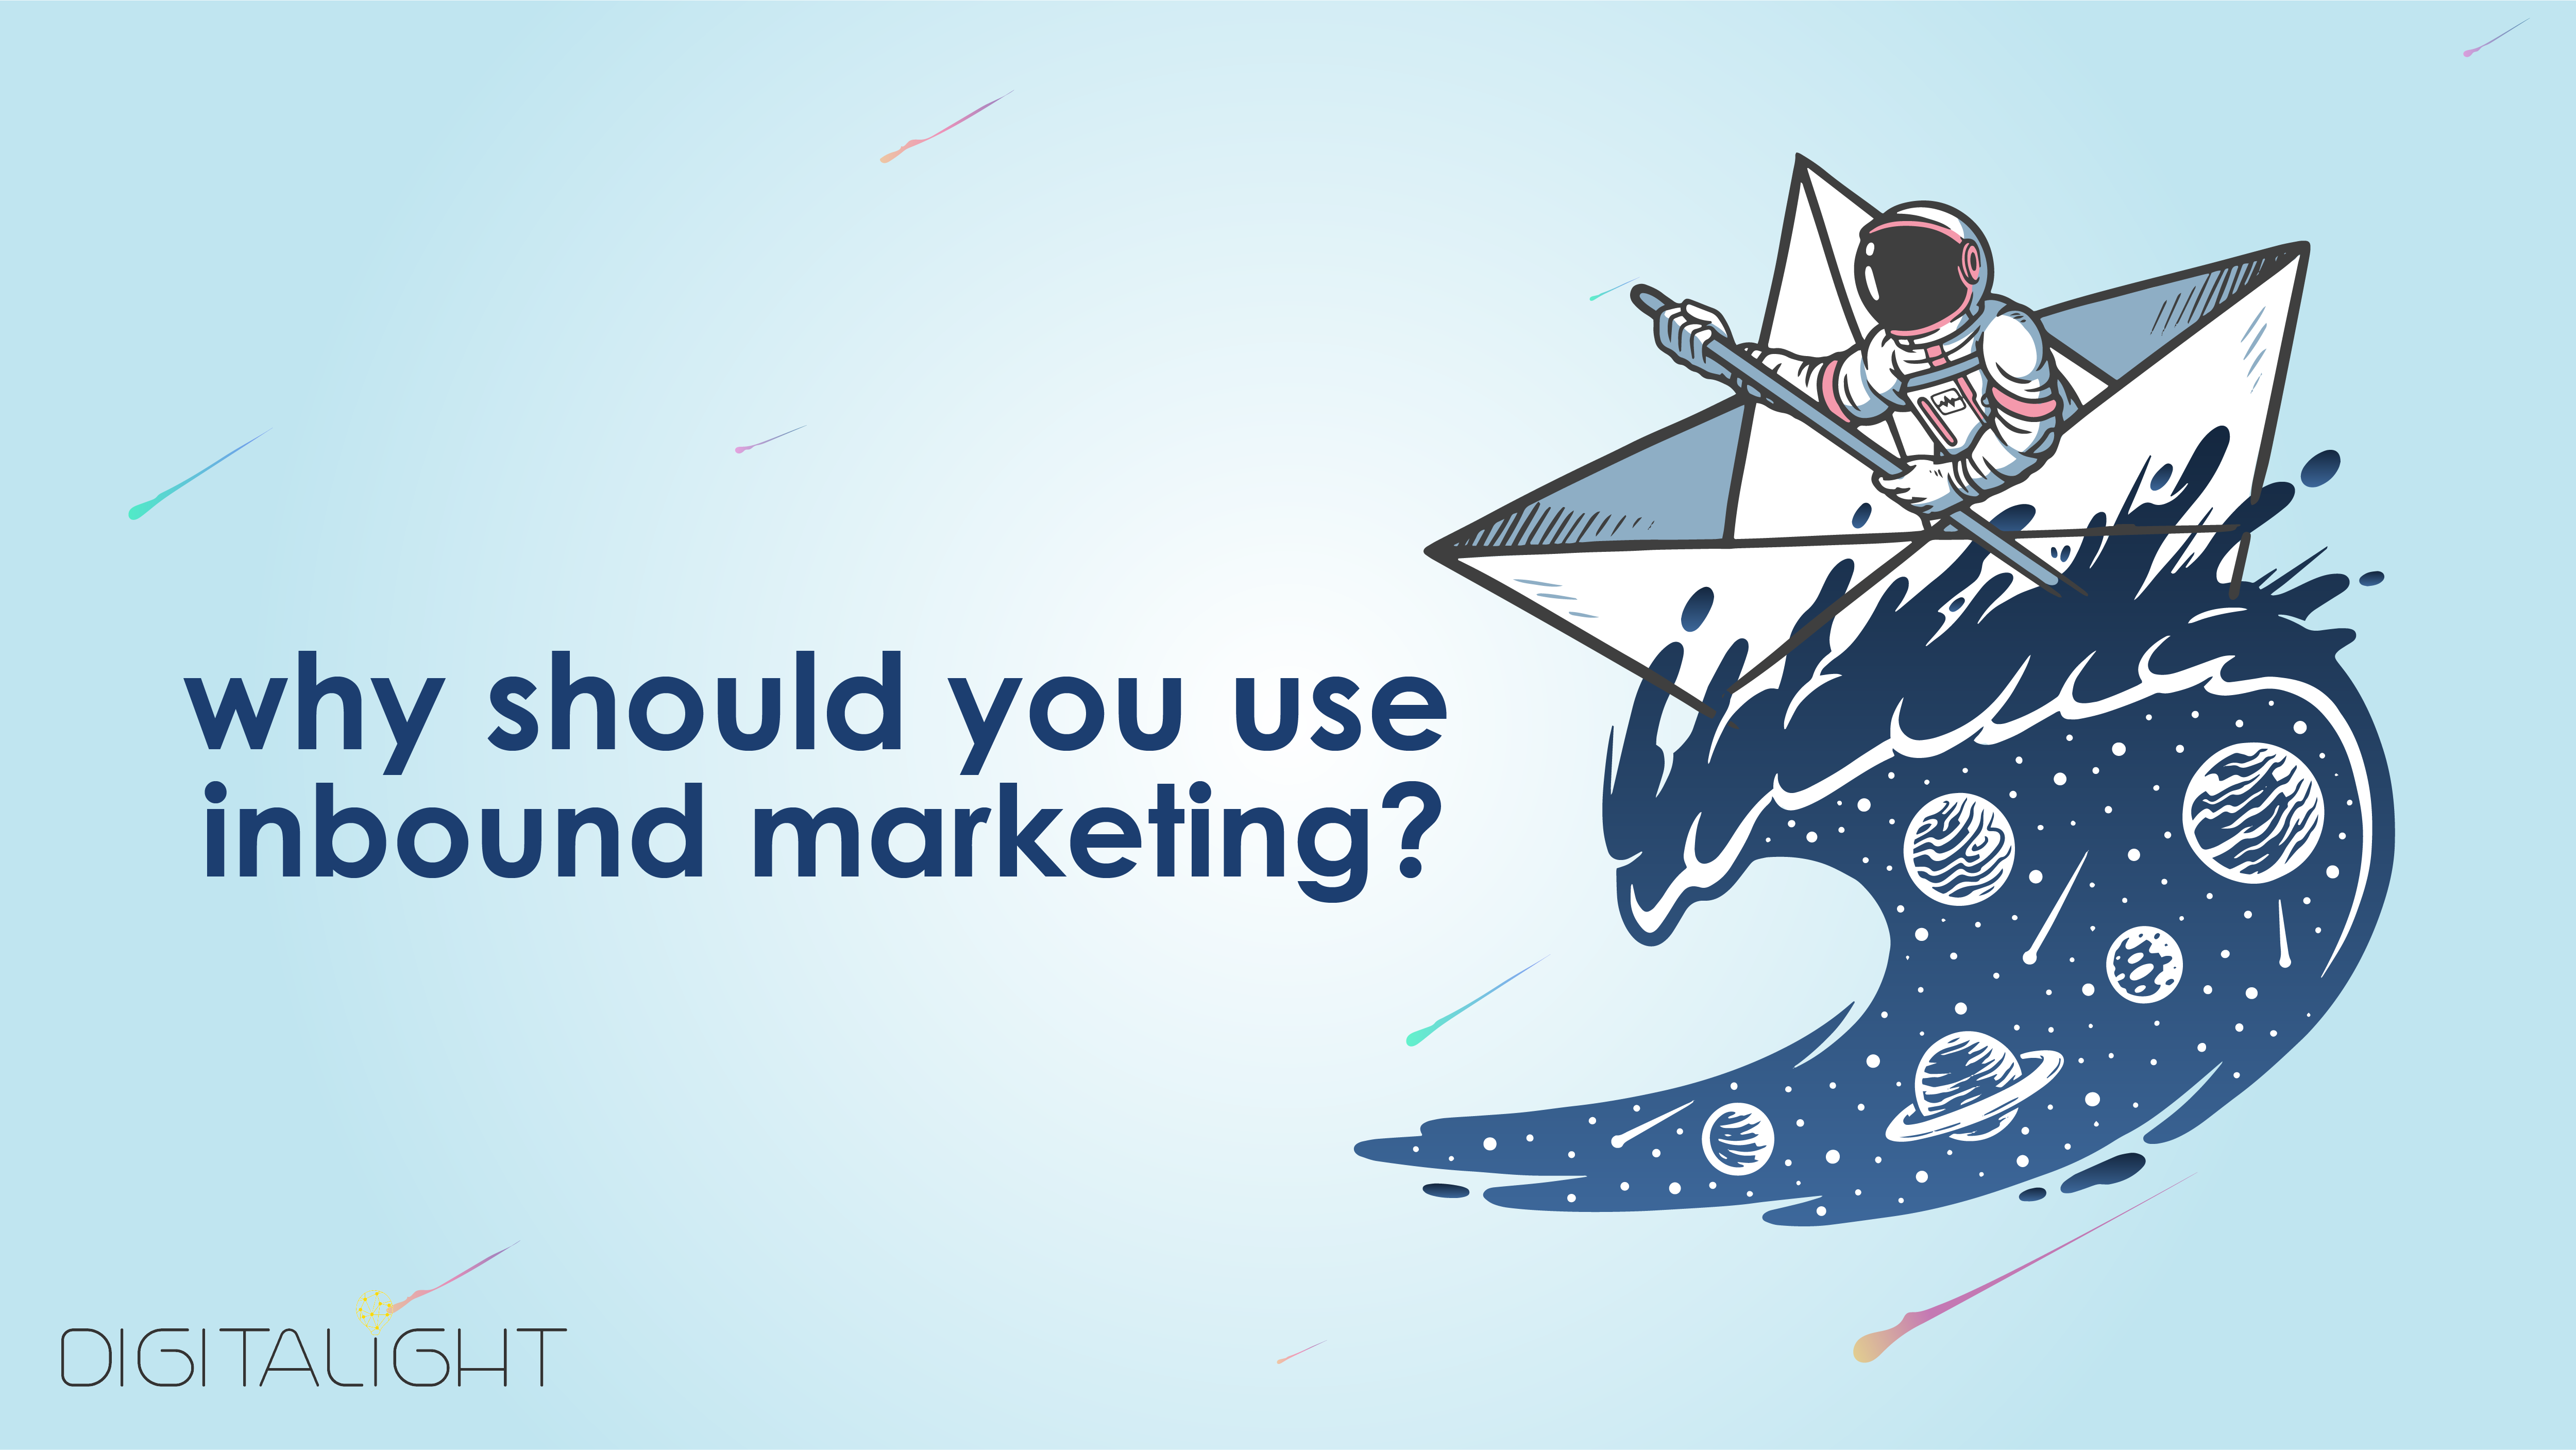 why should you use inbound marketing?